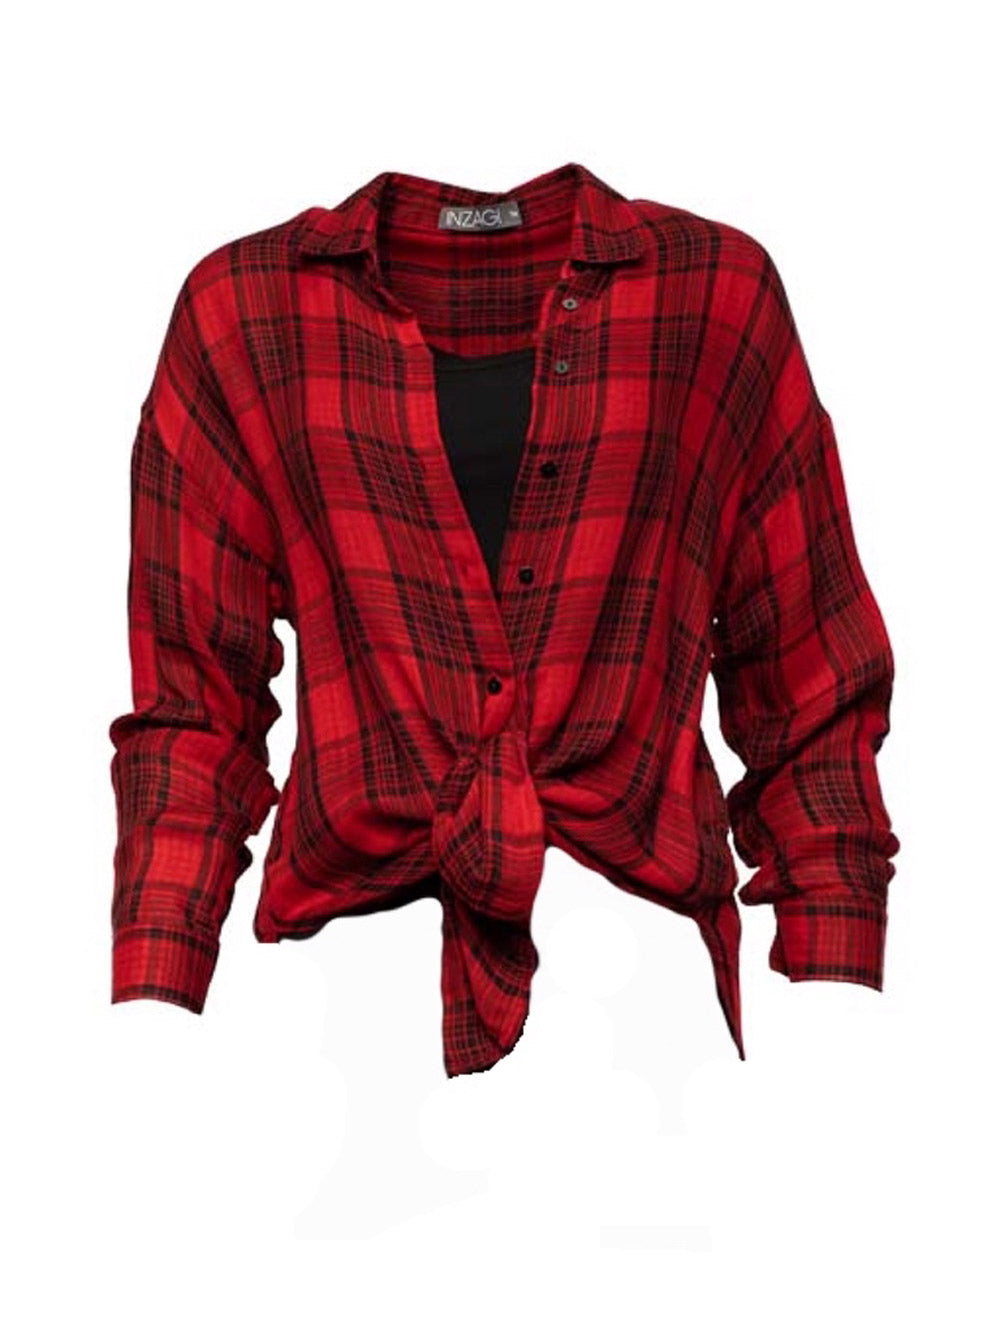 INZAGI Charlotte Check Shirt - Red